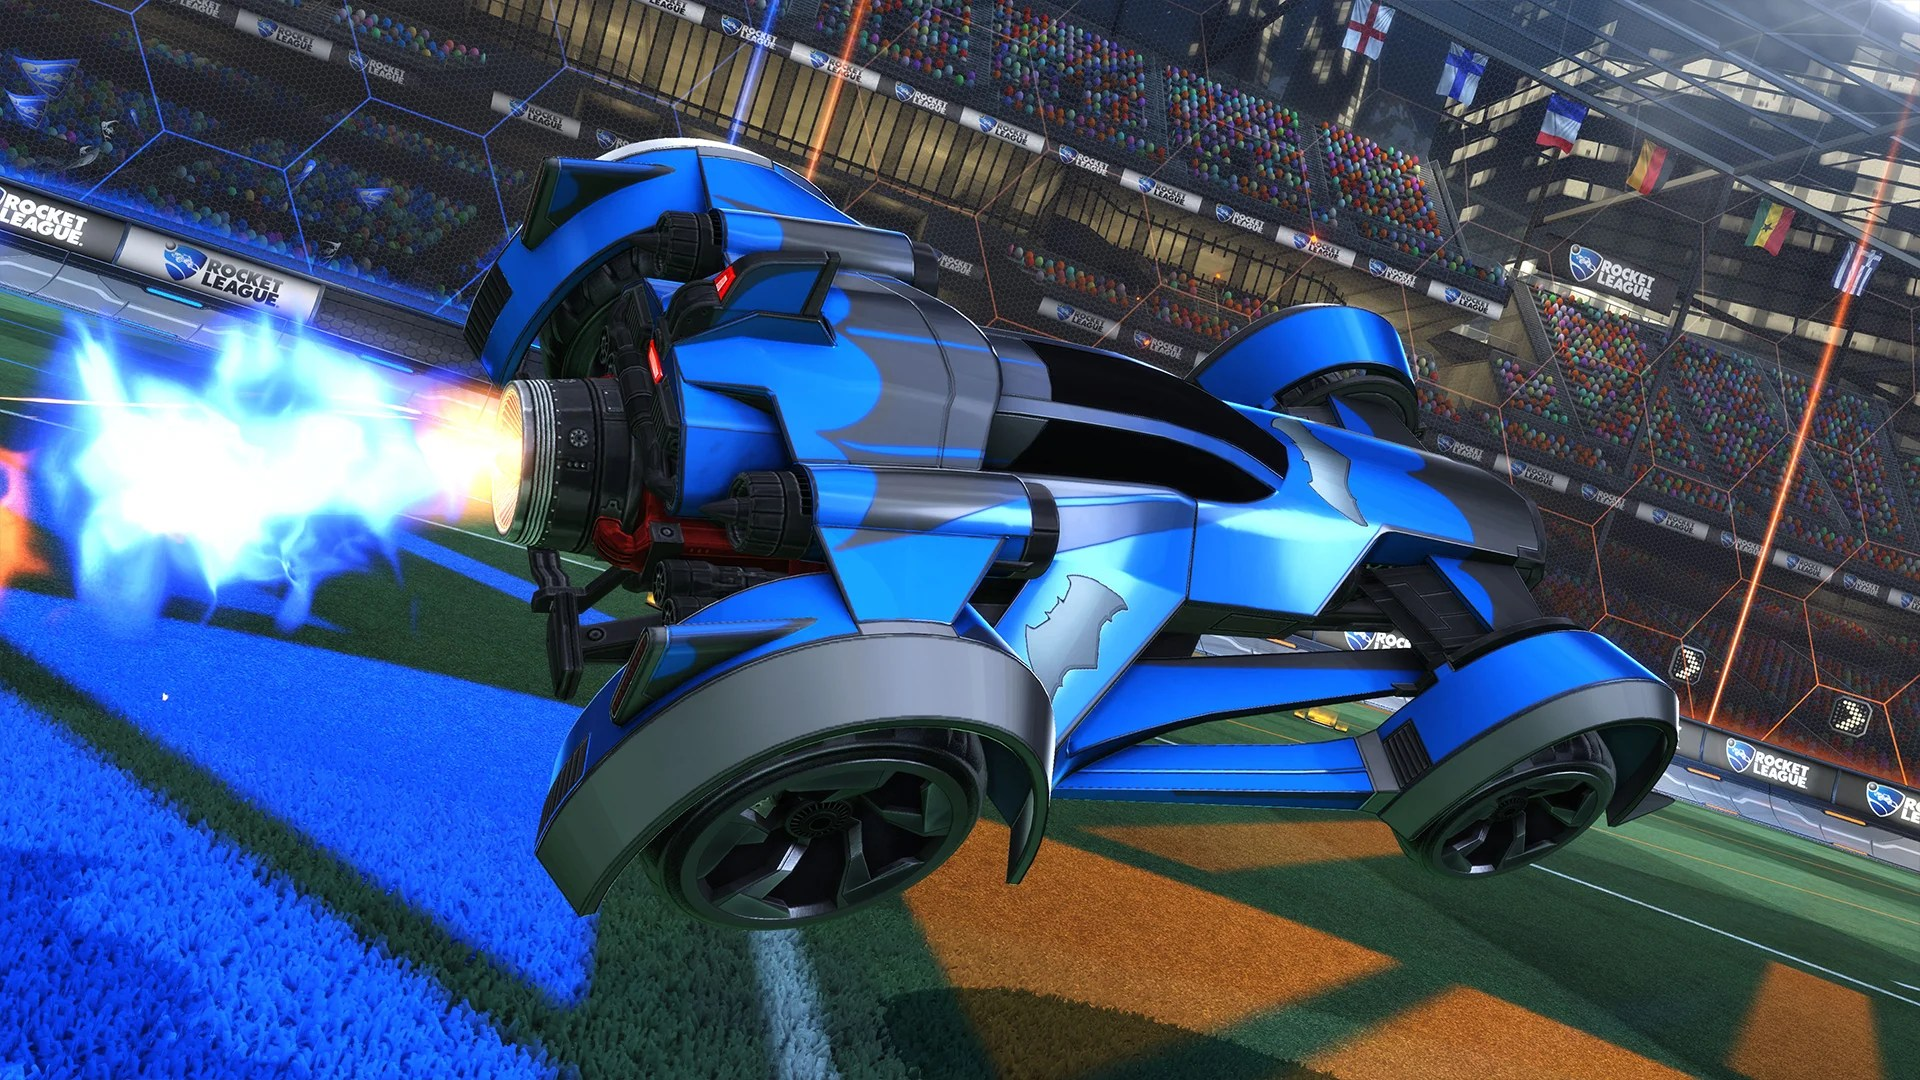 Fast And The Furious Cars Wallpaper Dc Super Heroes Dlc Pack Rocket League 174 Official Site